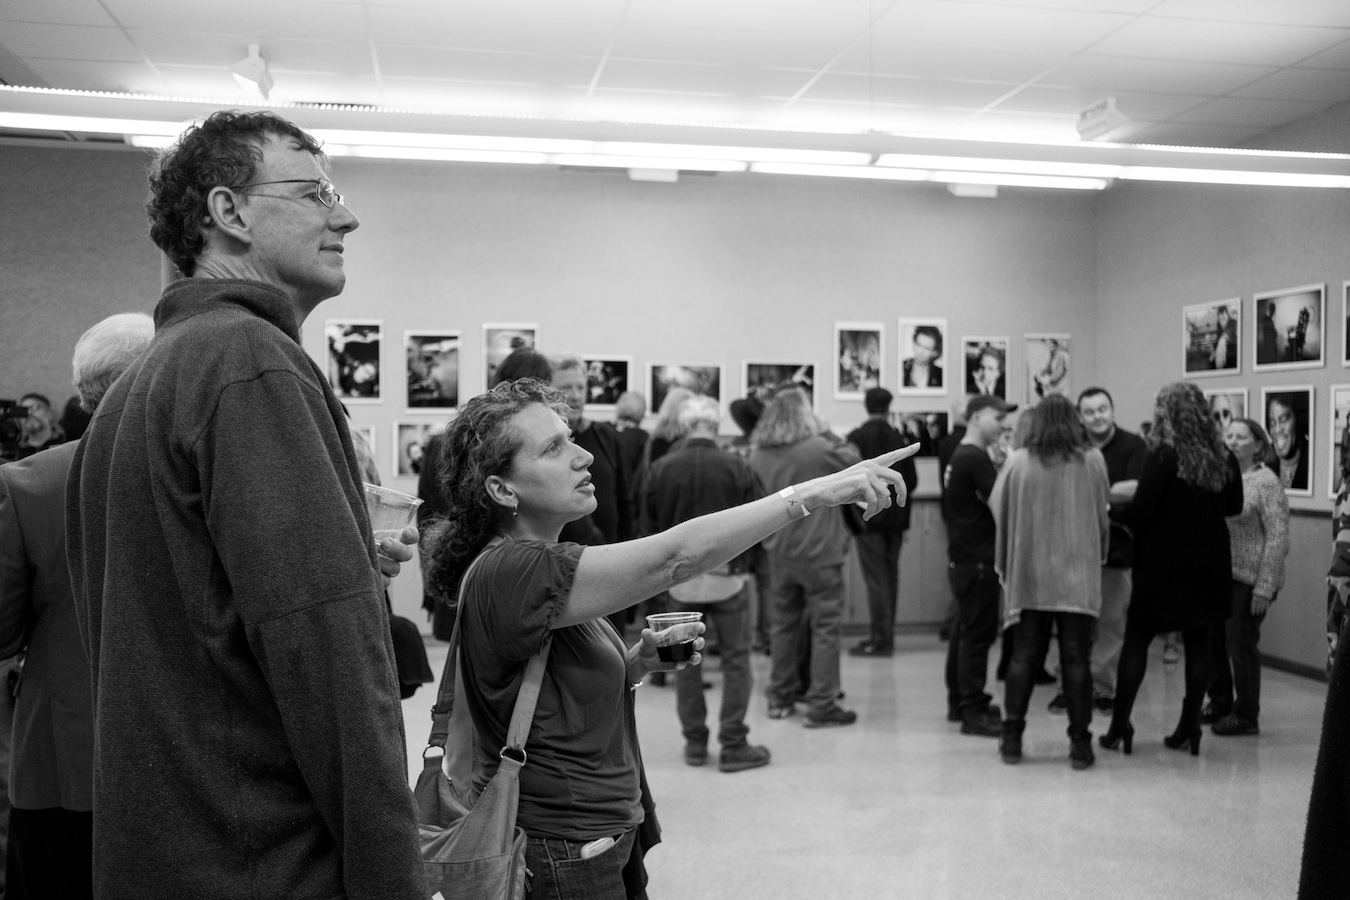 harveymilkphotocenter is a good place to meet photo enthusiasts